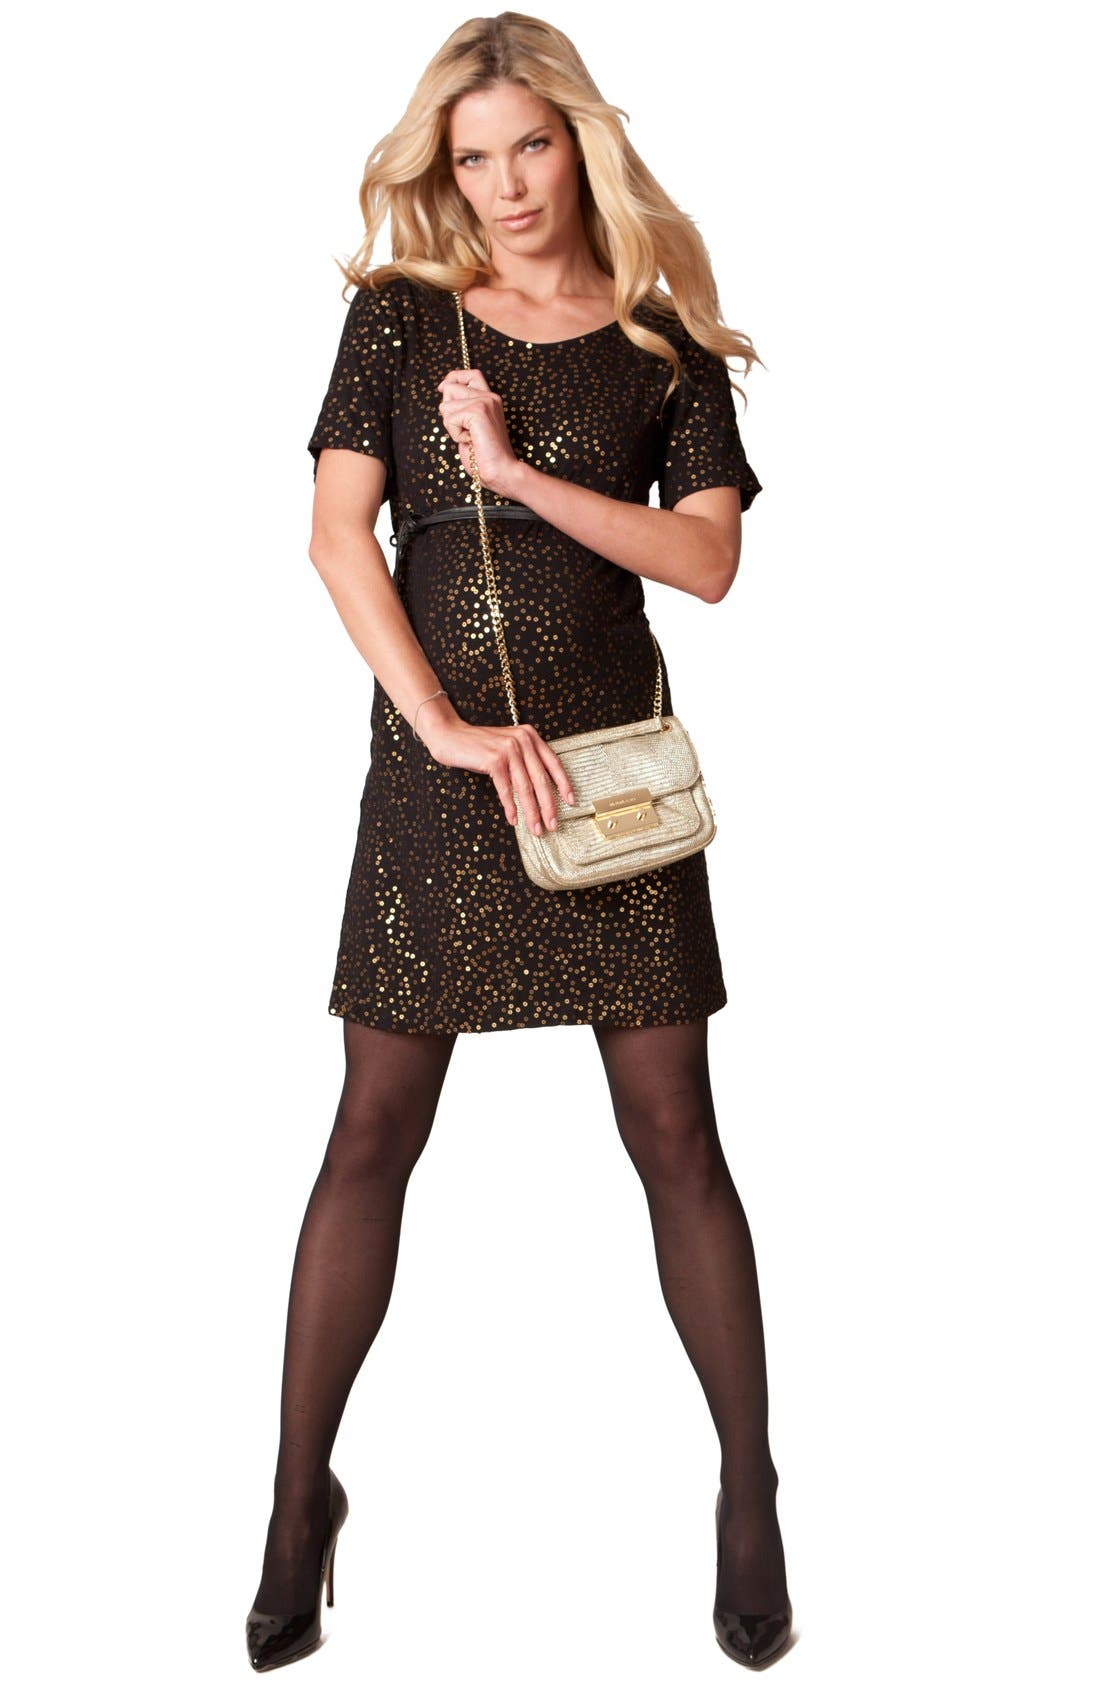 'Luella Luxe'  Jersey Maternity Dress,                             Alternate thumbnail 2, color,                             Black/ Gold